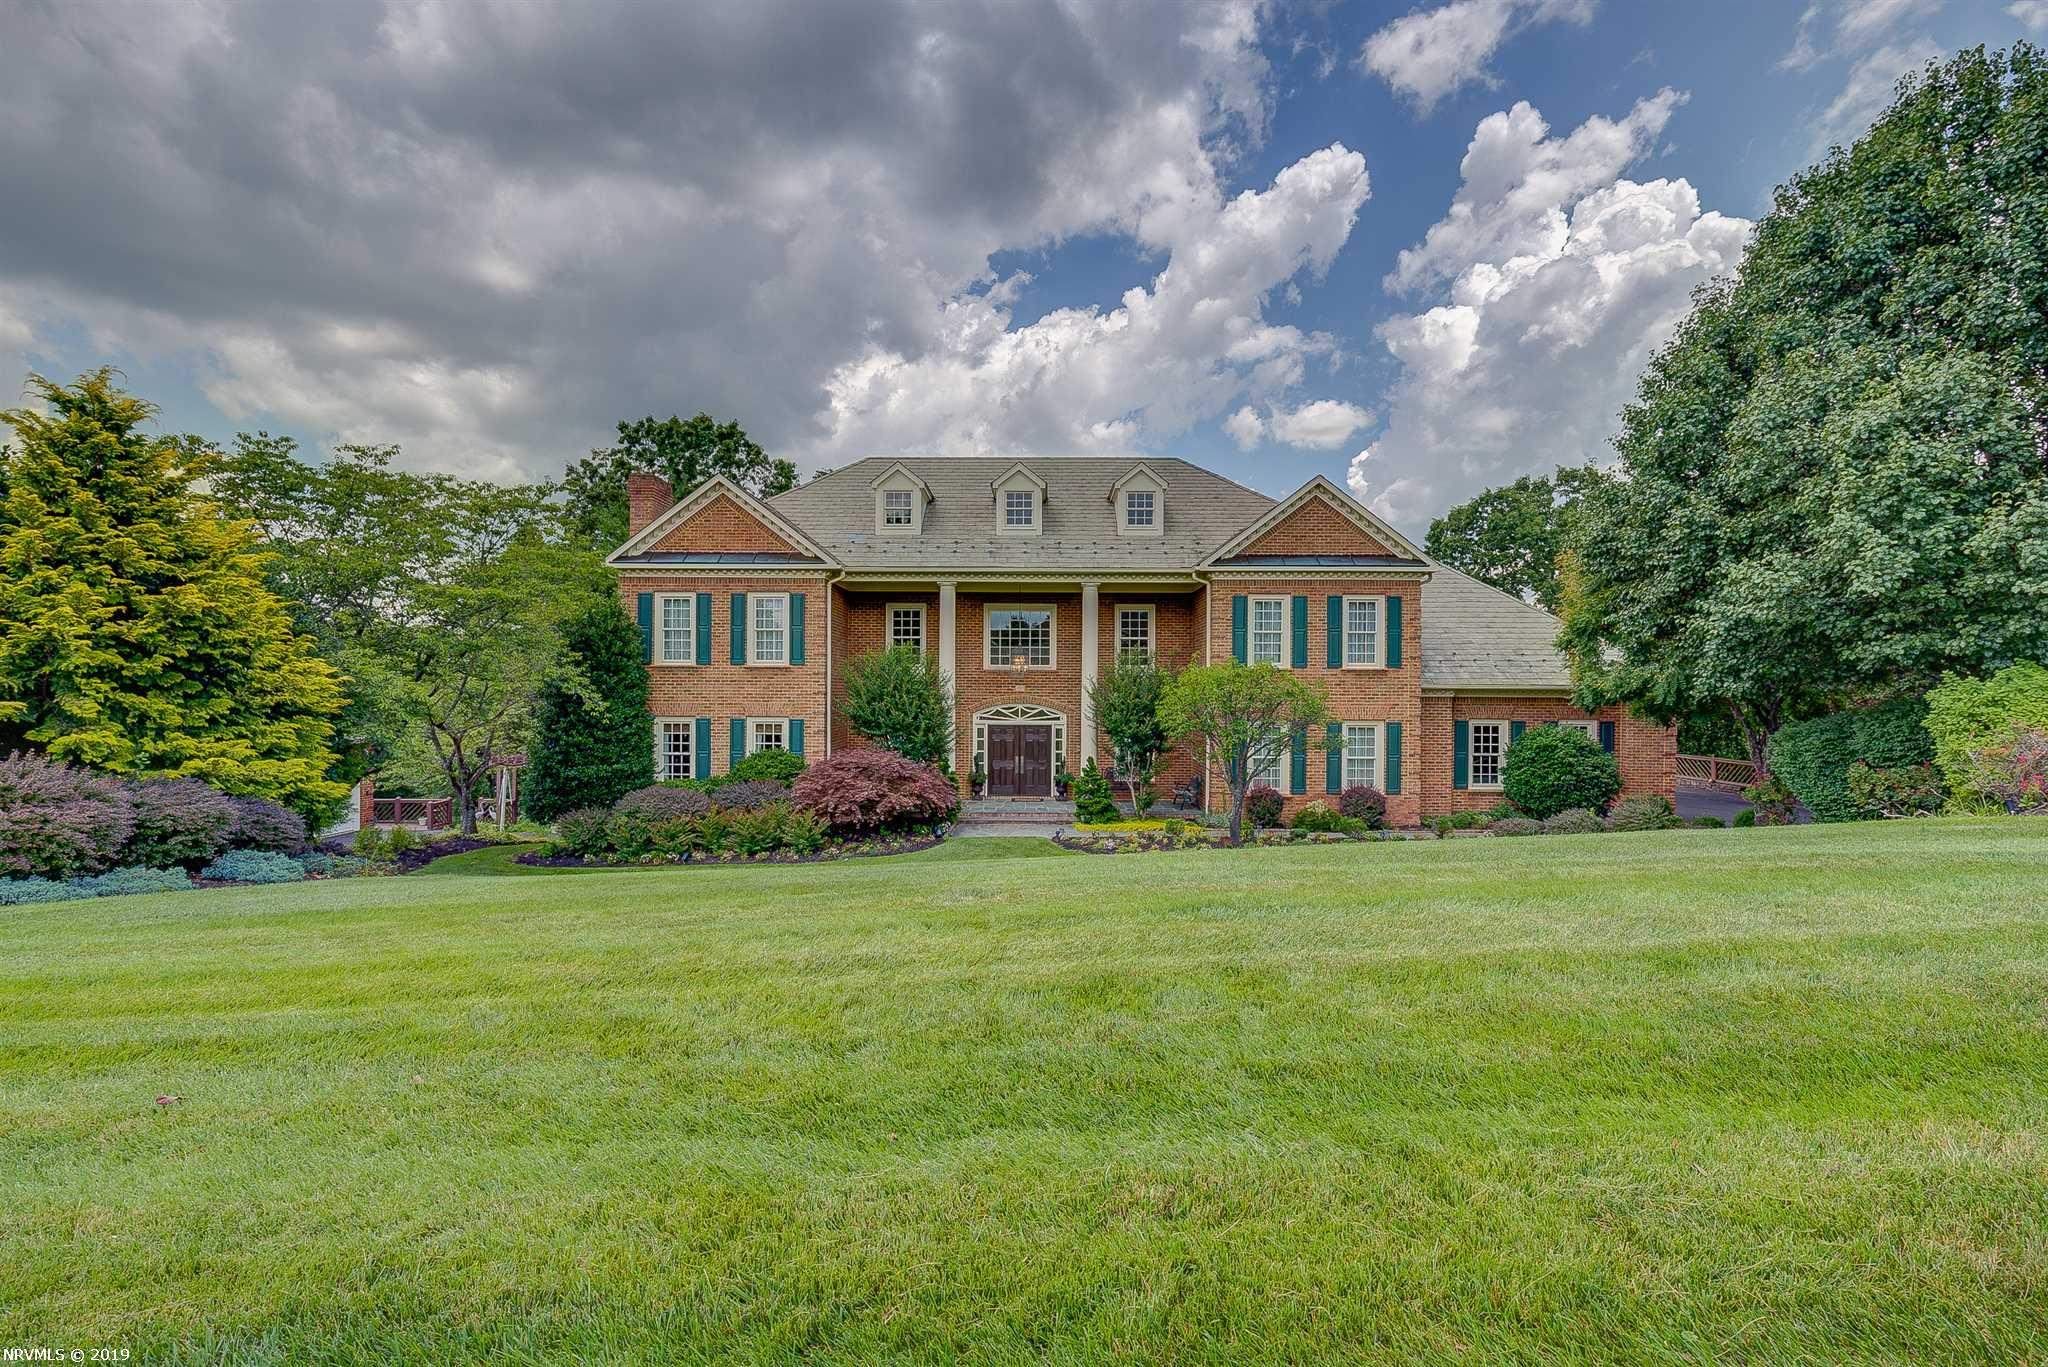 Blue Ridge Parkway Homes For Sale